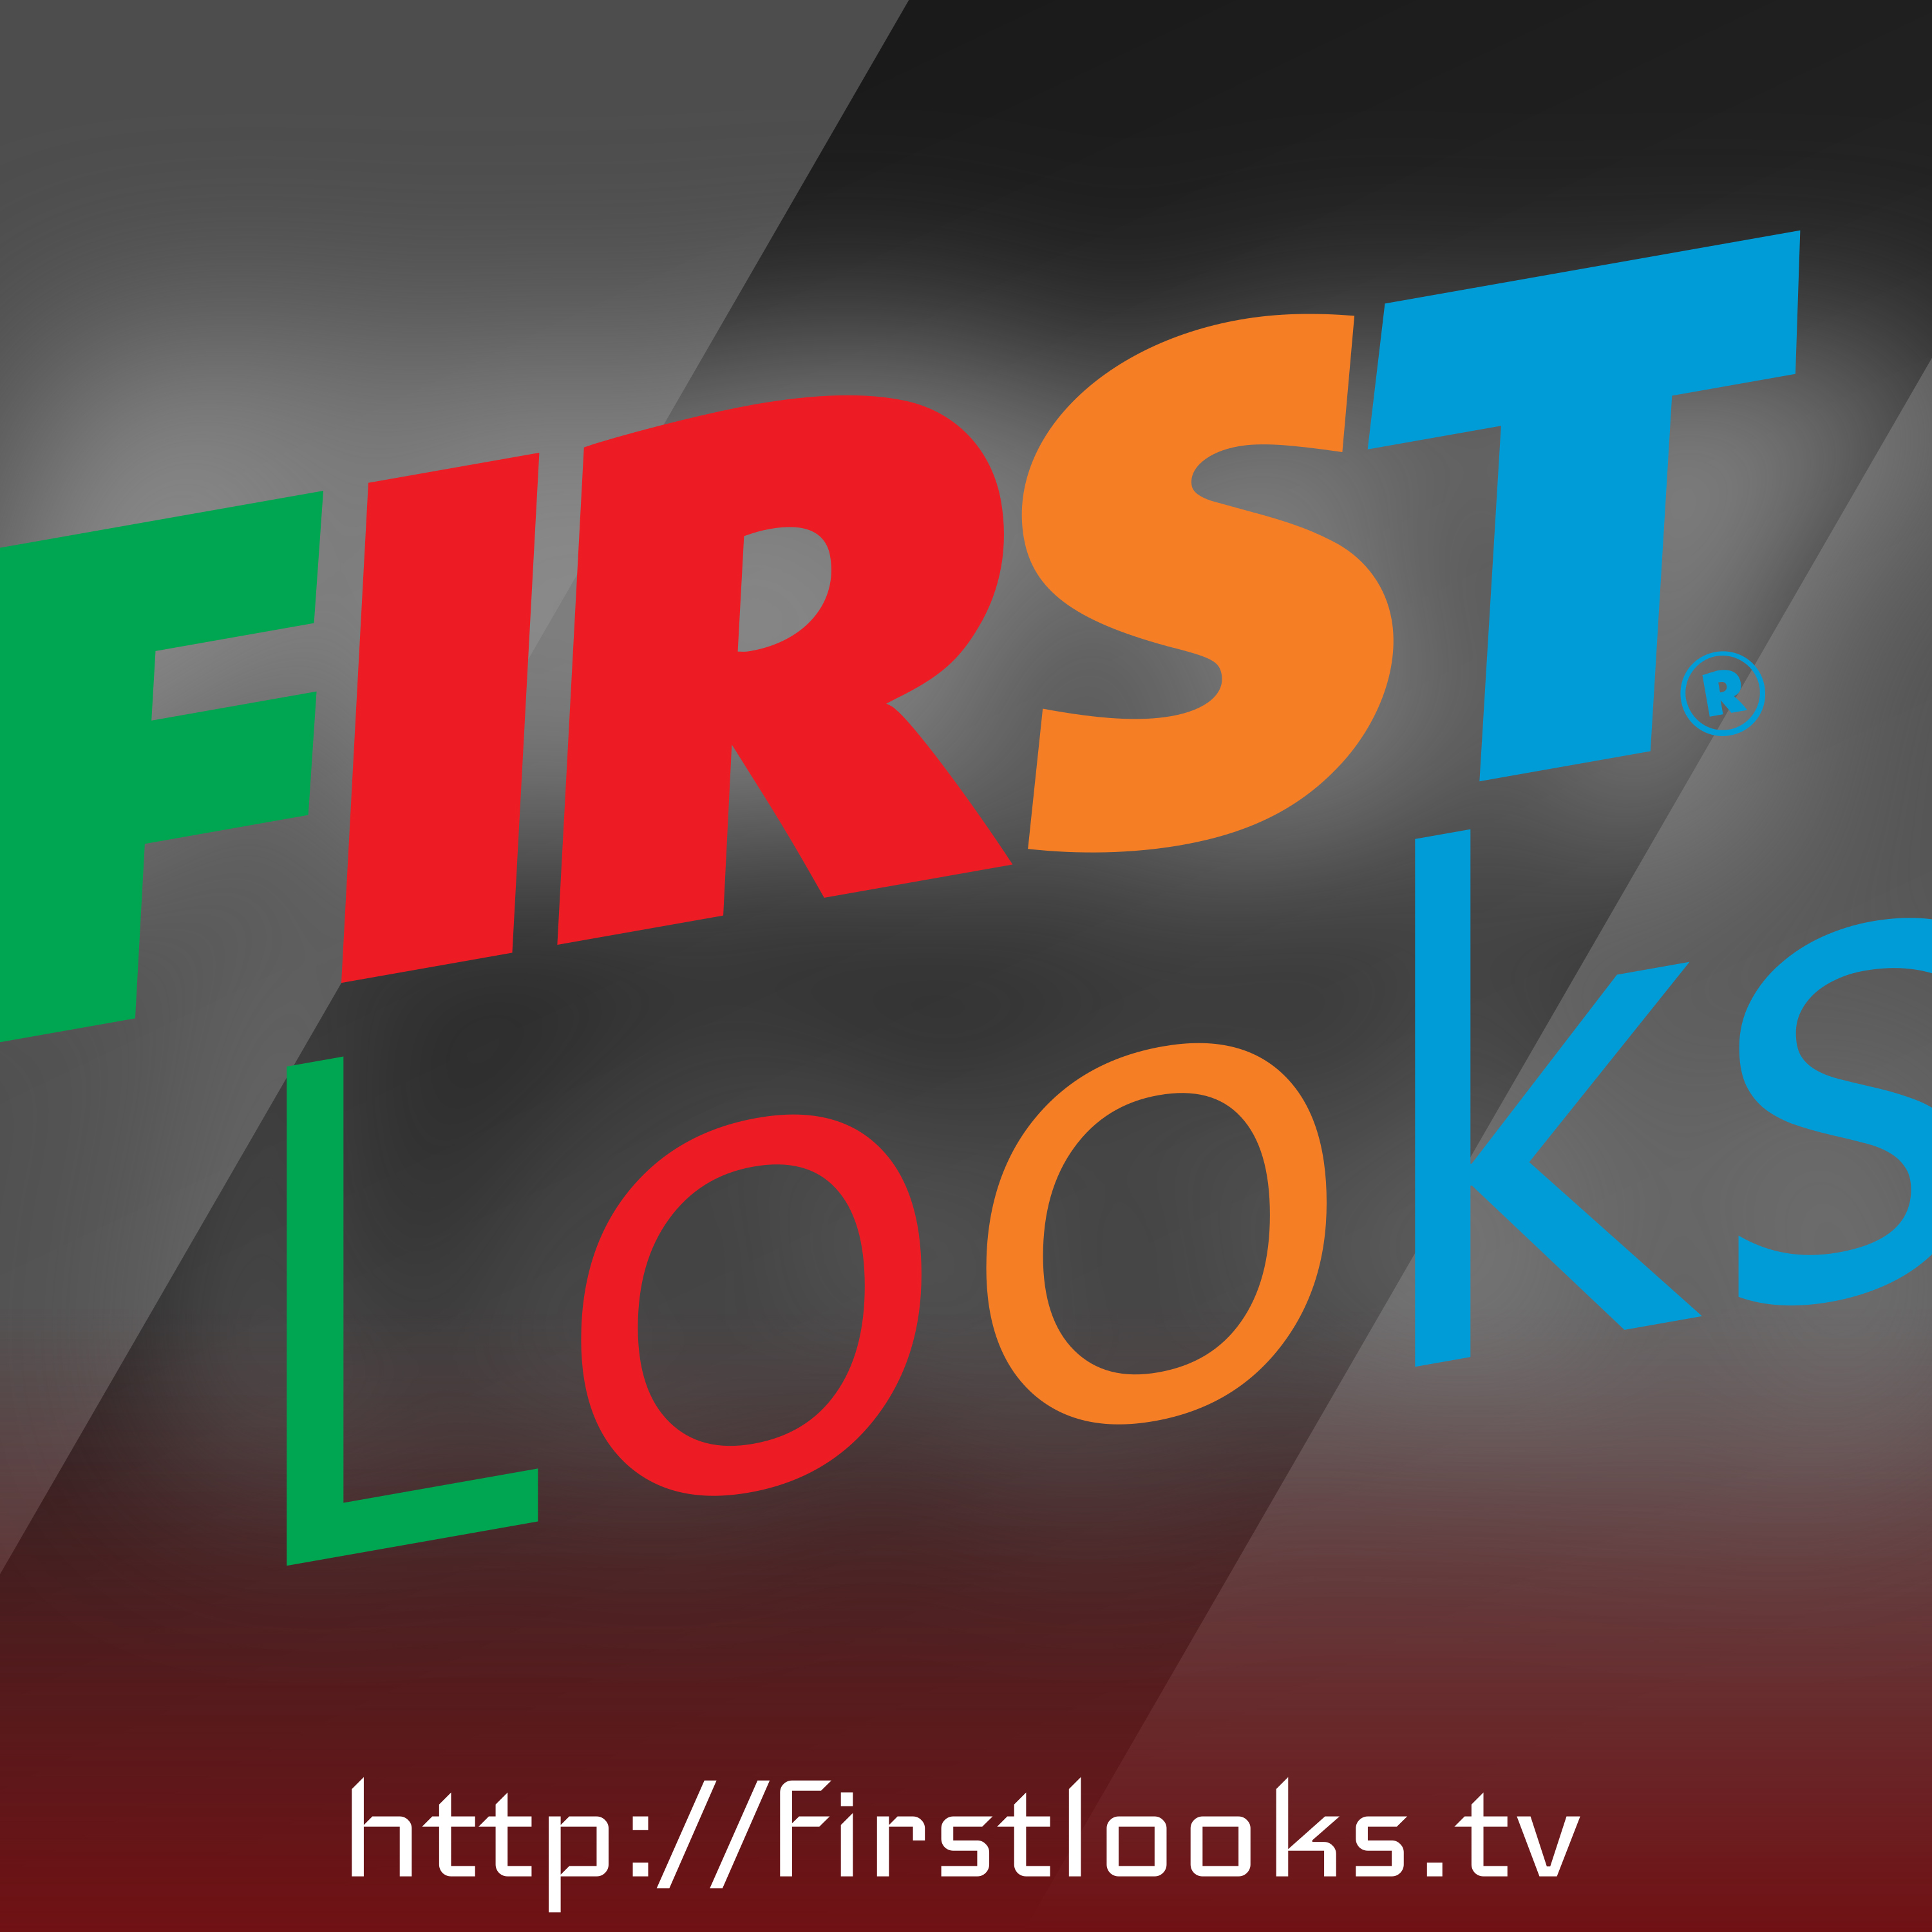 FIRST Looks (Audio)